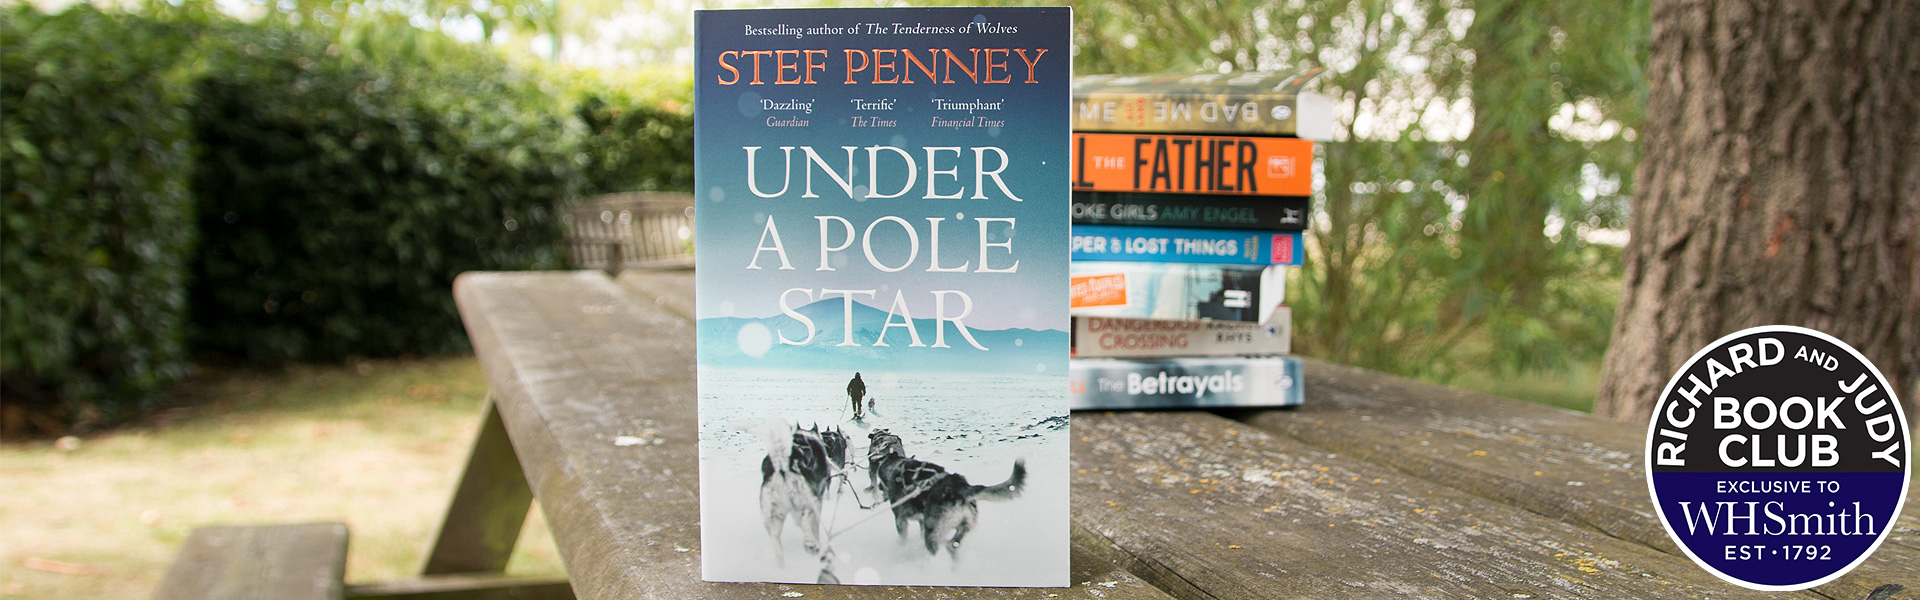 Richard and Judy Introduce Under a Pole Star by Stef Penney